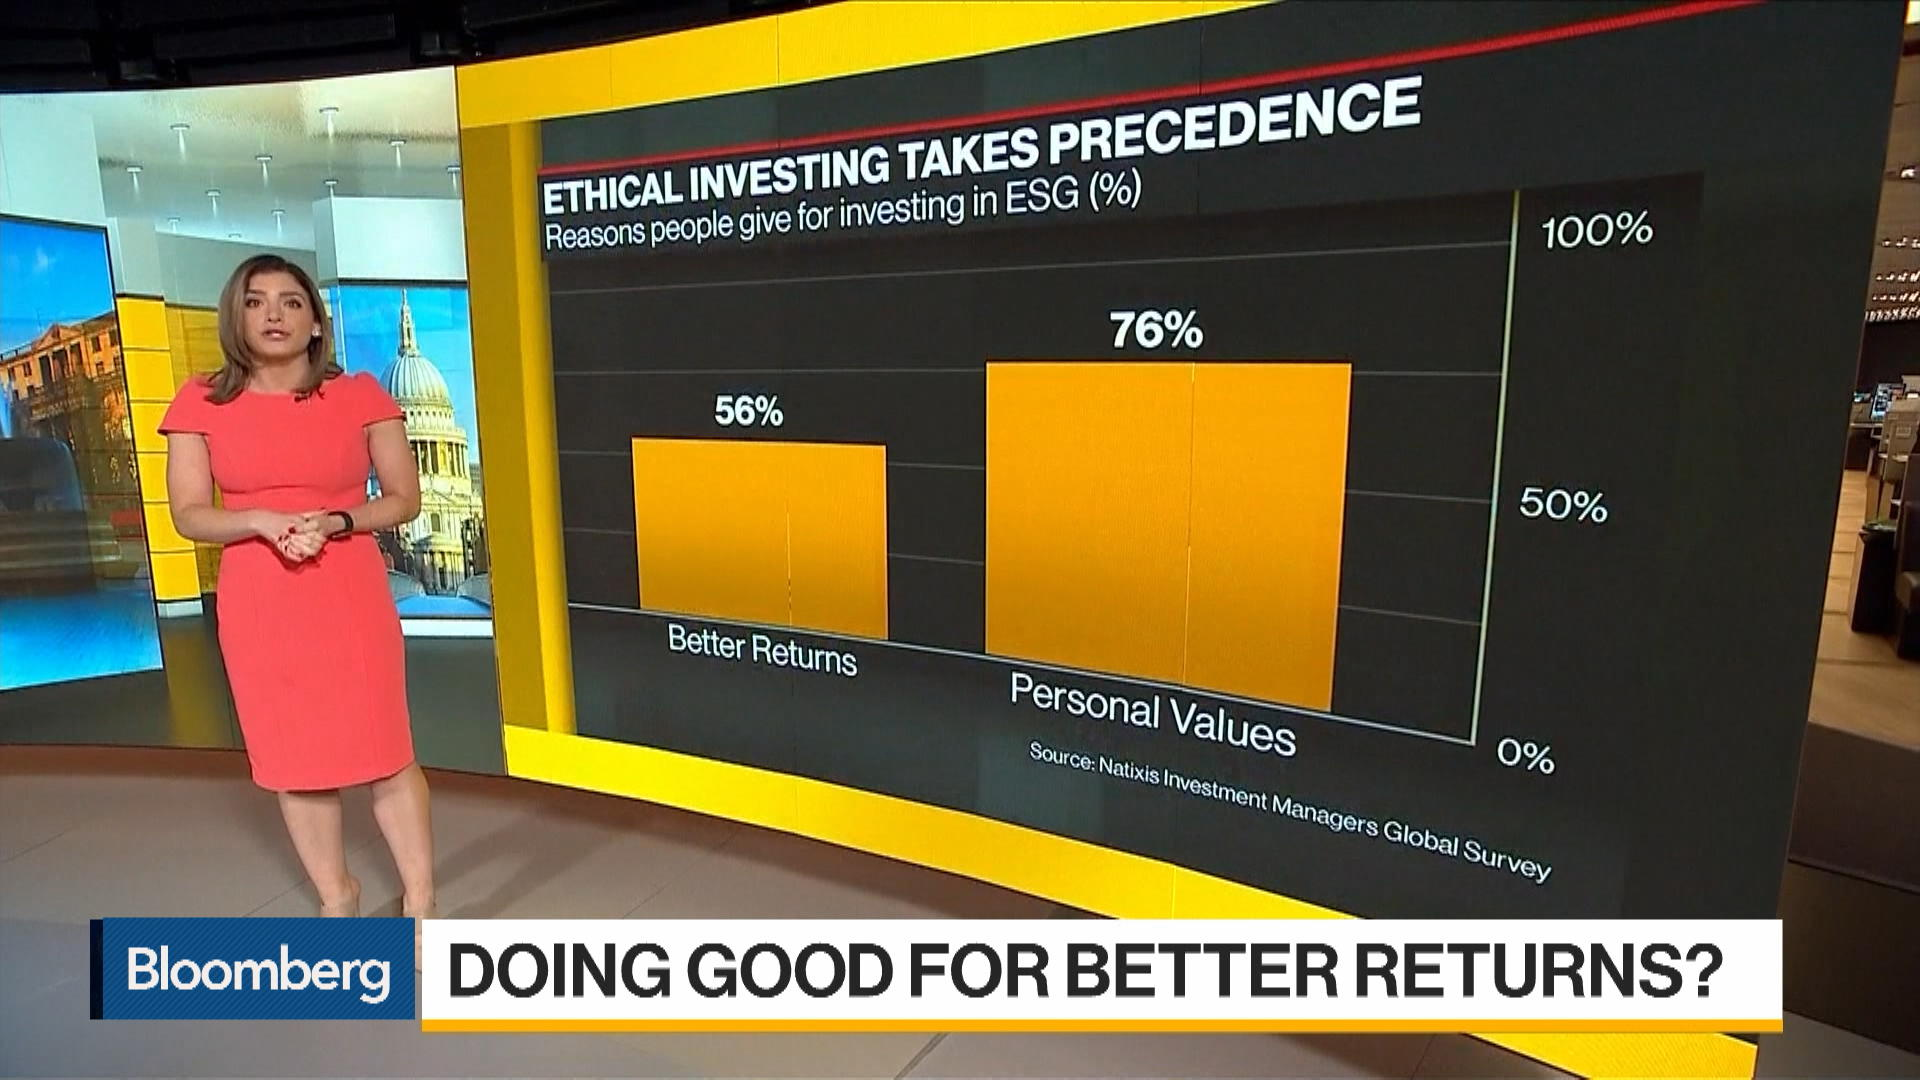 Covering Climate Now Report: Do ESG Investments Make for Better Returns?